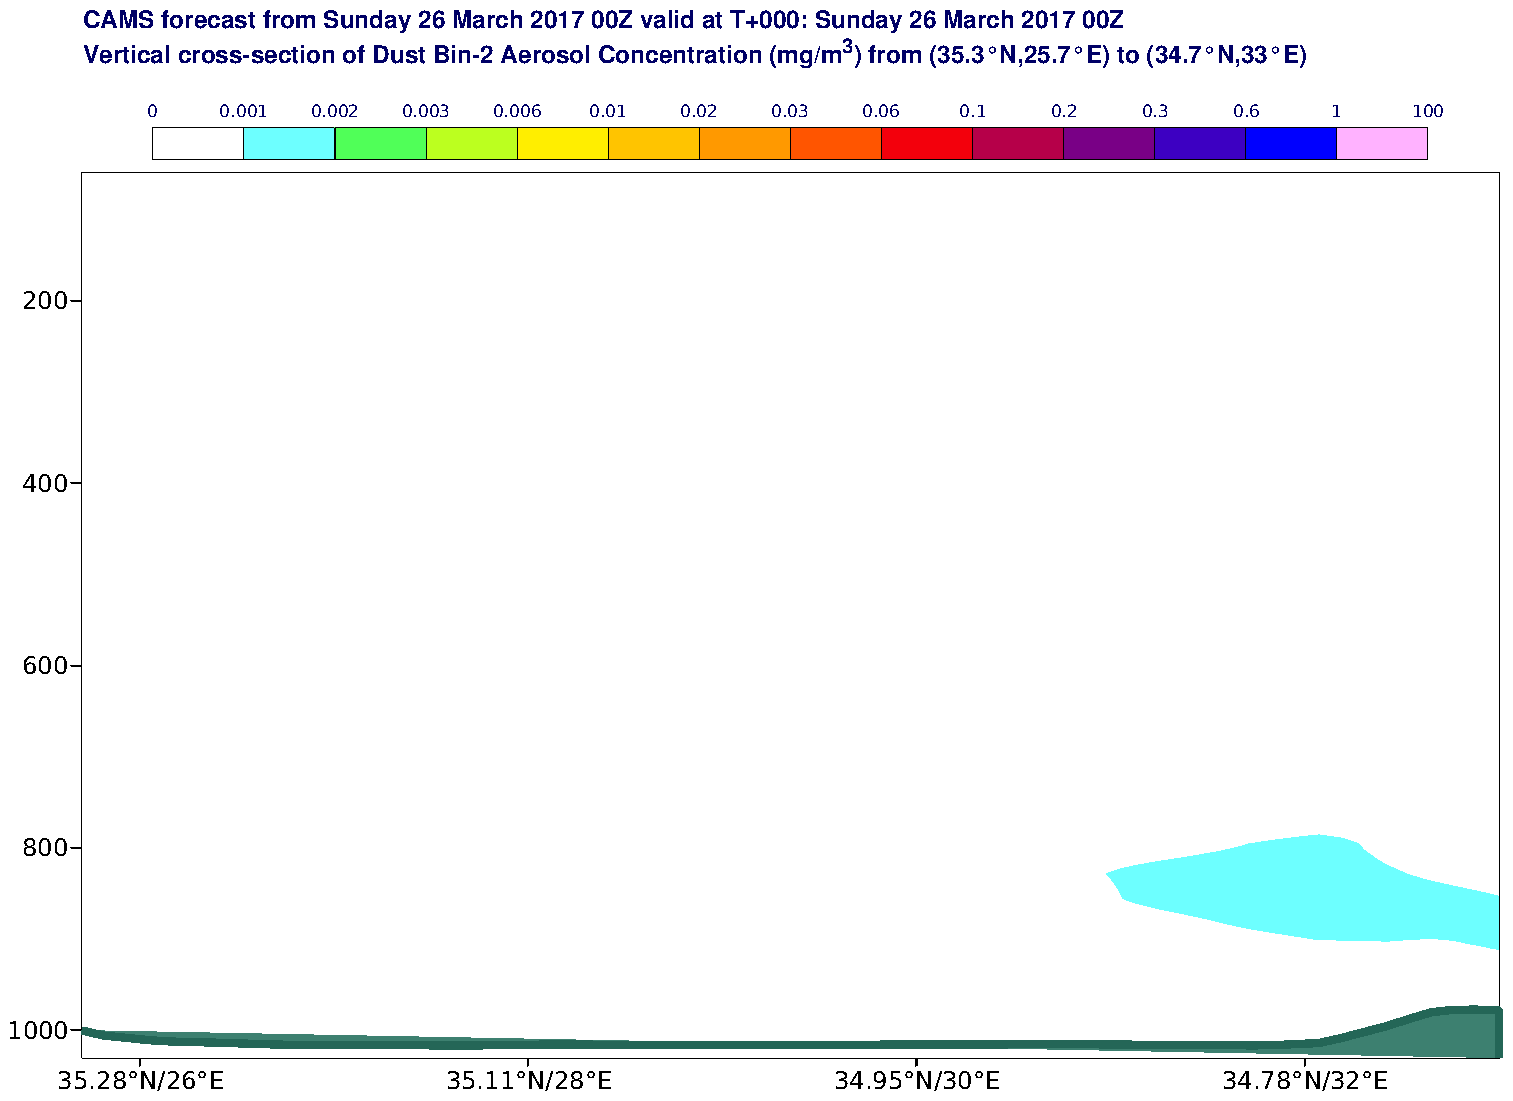 Vertical cross-section of Dust Bin-2 Aerosol Concentration (mg/m3) valid at T0 - 2017-03-26 00:00